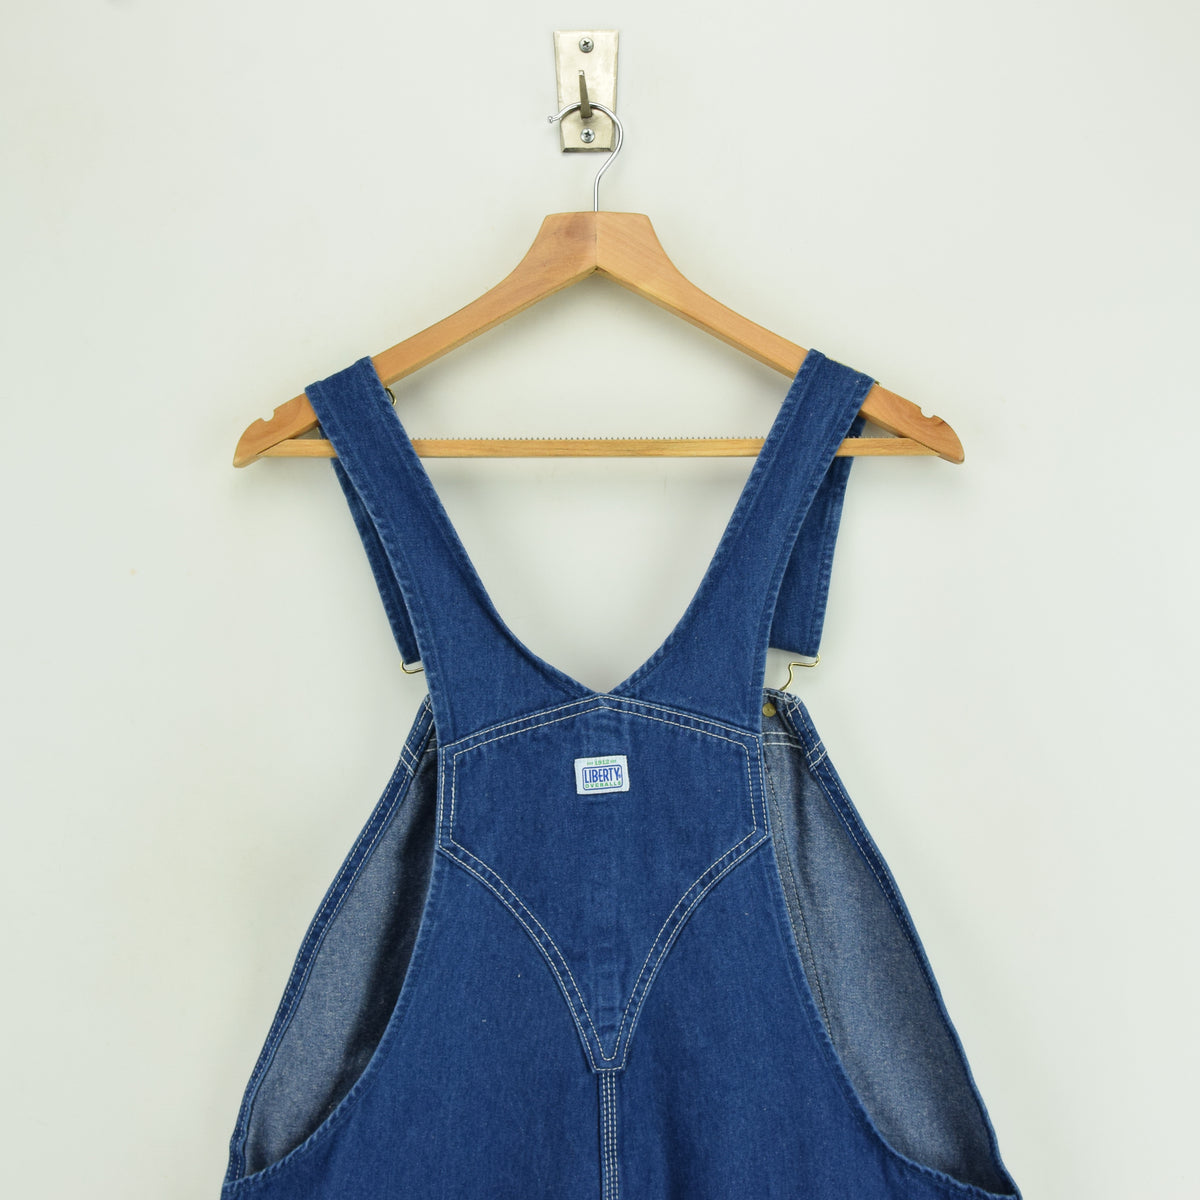 Vintage Liberty Denim Work Dungarees Blue Bib Overalls Trousers M / L 32-34 W back